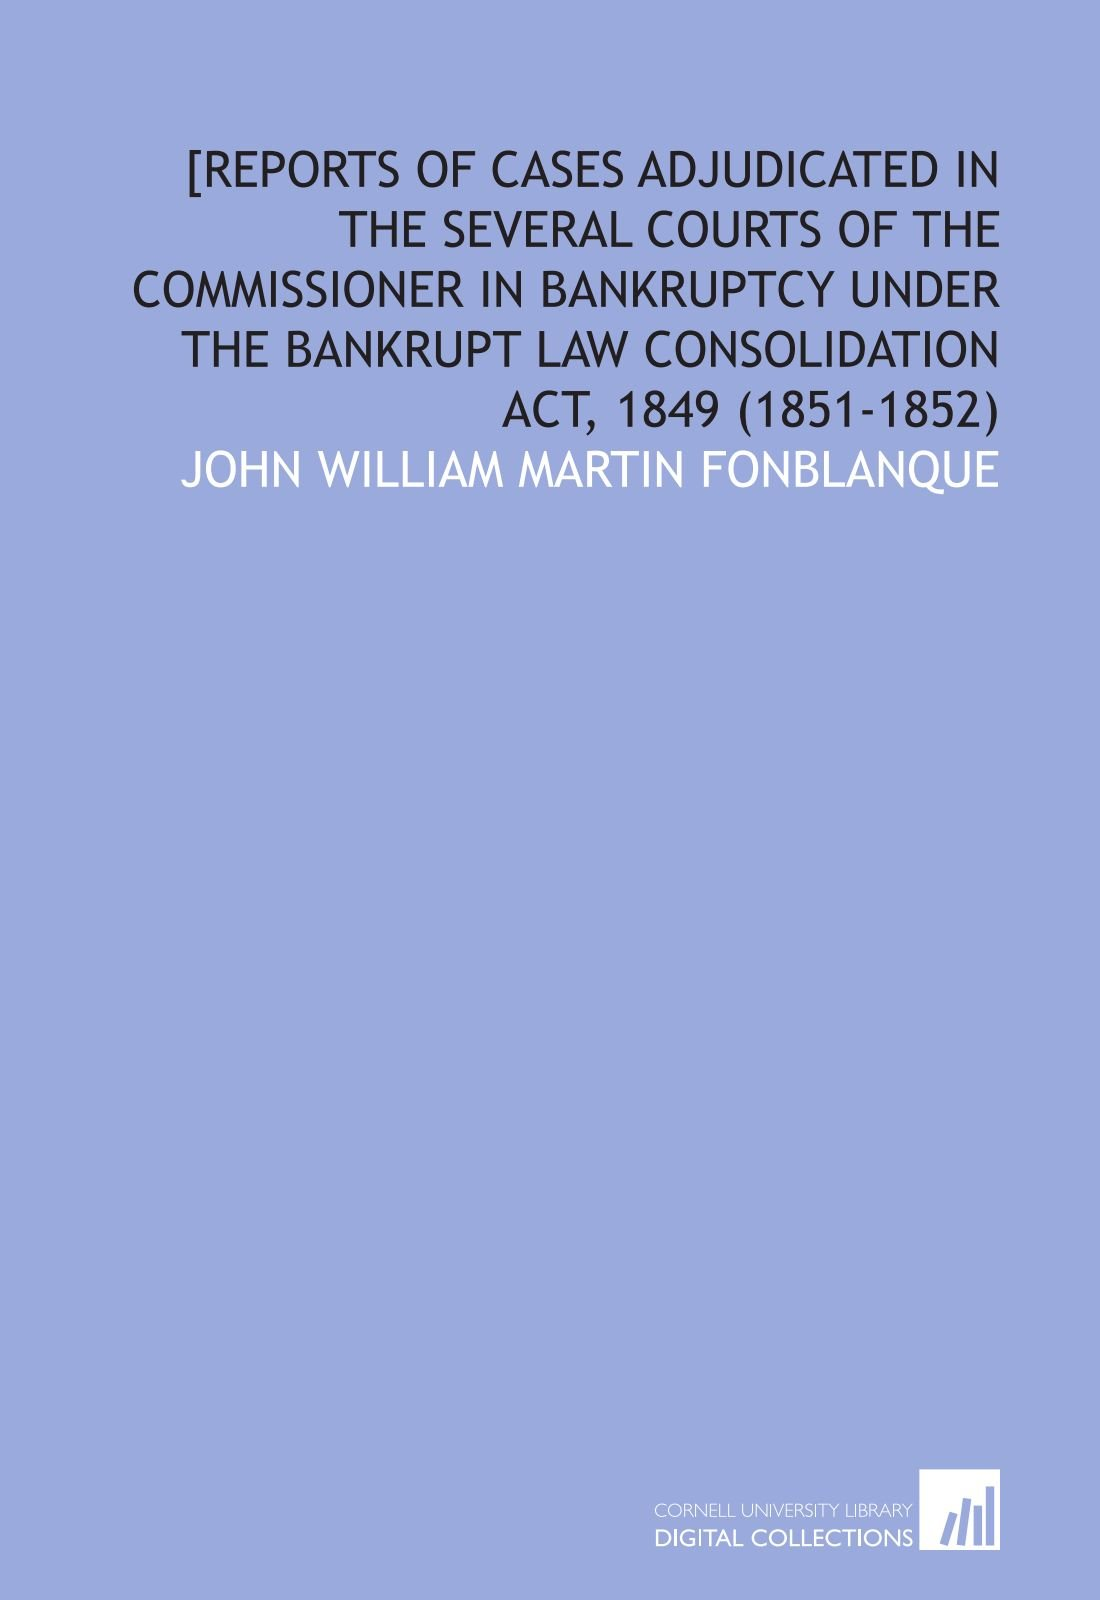 Download [Reports of Cases Adjudicated in the Several Courts of the Commissioner in Bankruptcy Under the Bankrupt Law Consolidation Act, 1849  (1851-1852) ebook